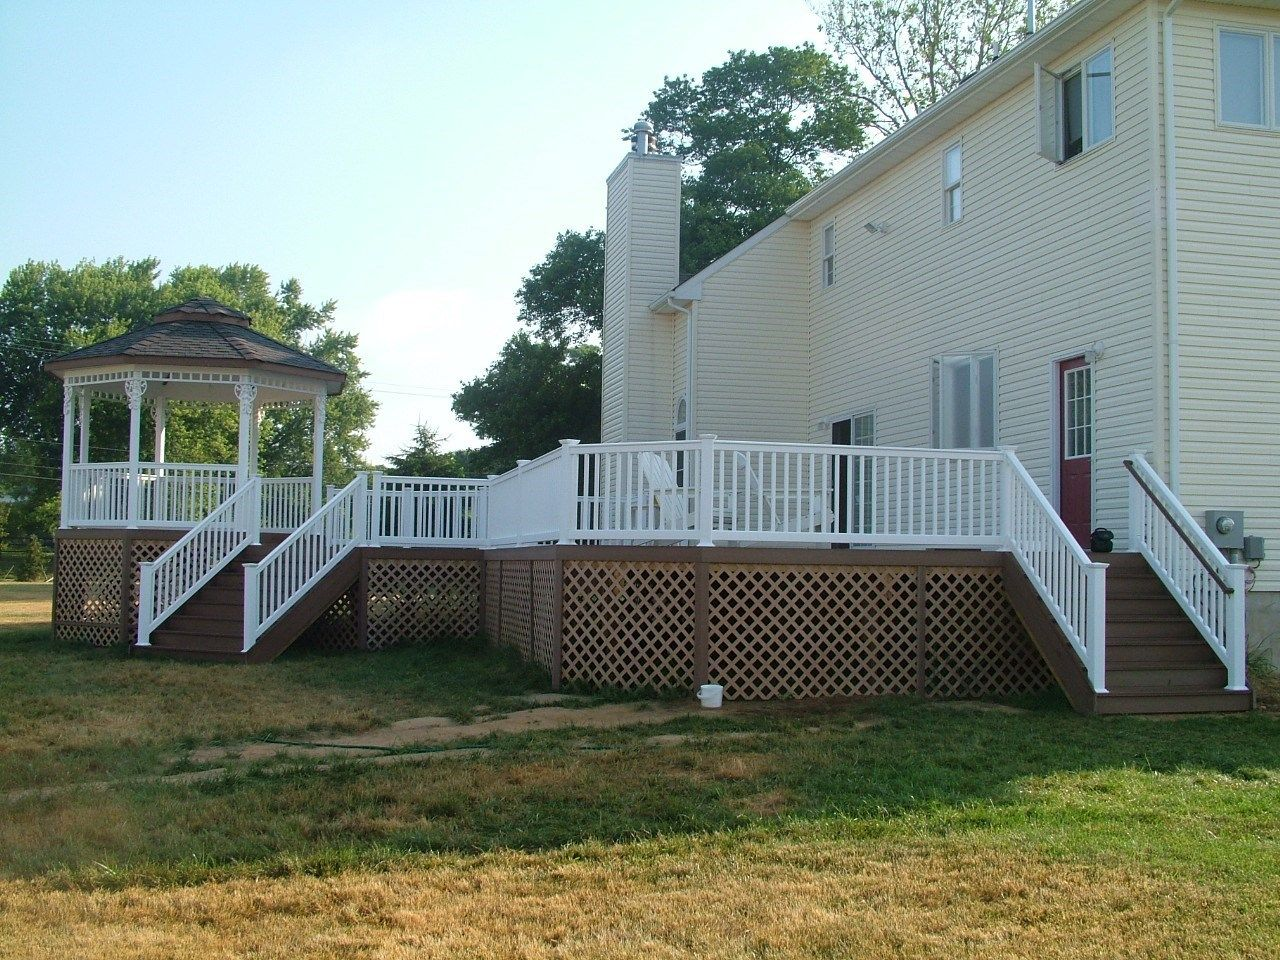 Custom Gazebo deck in Millstone NJ - Picture 3370